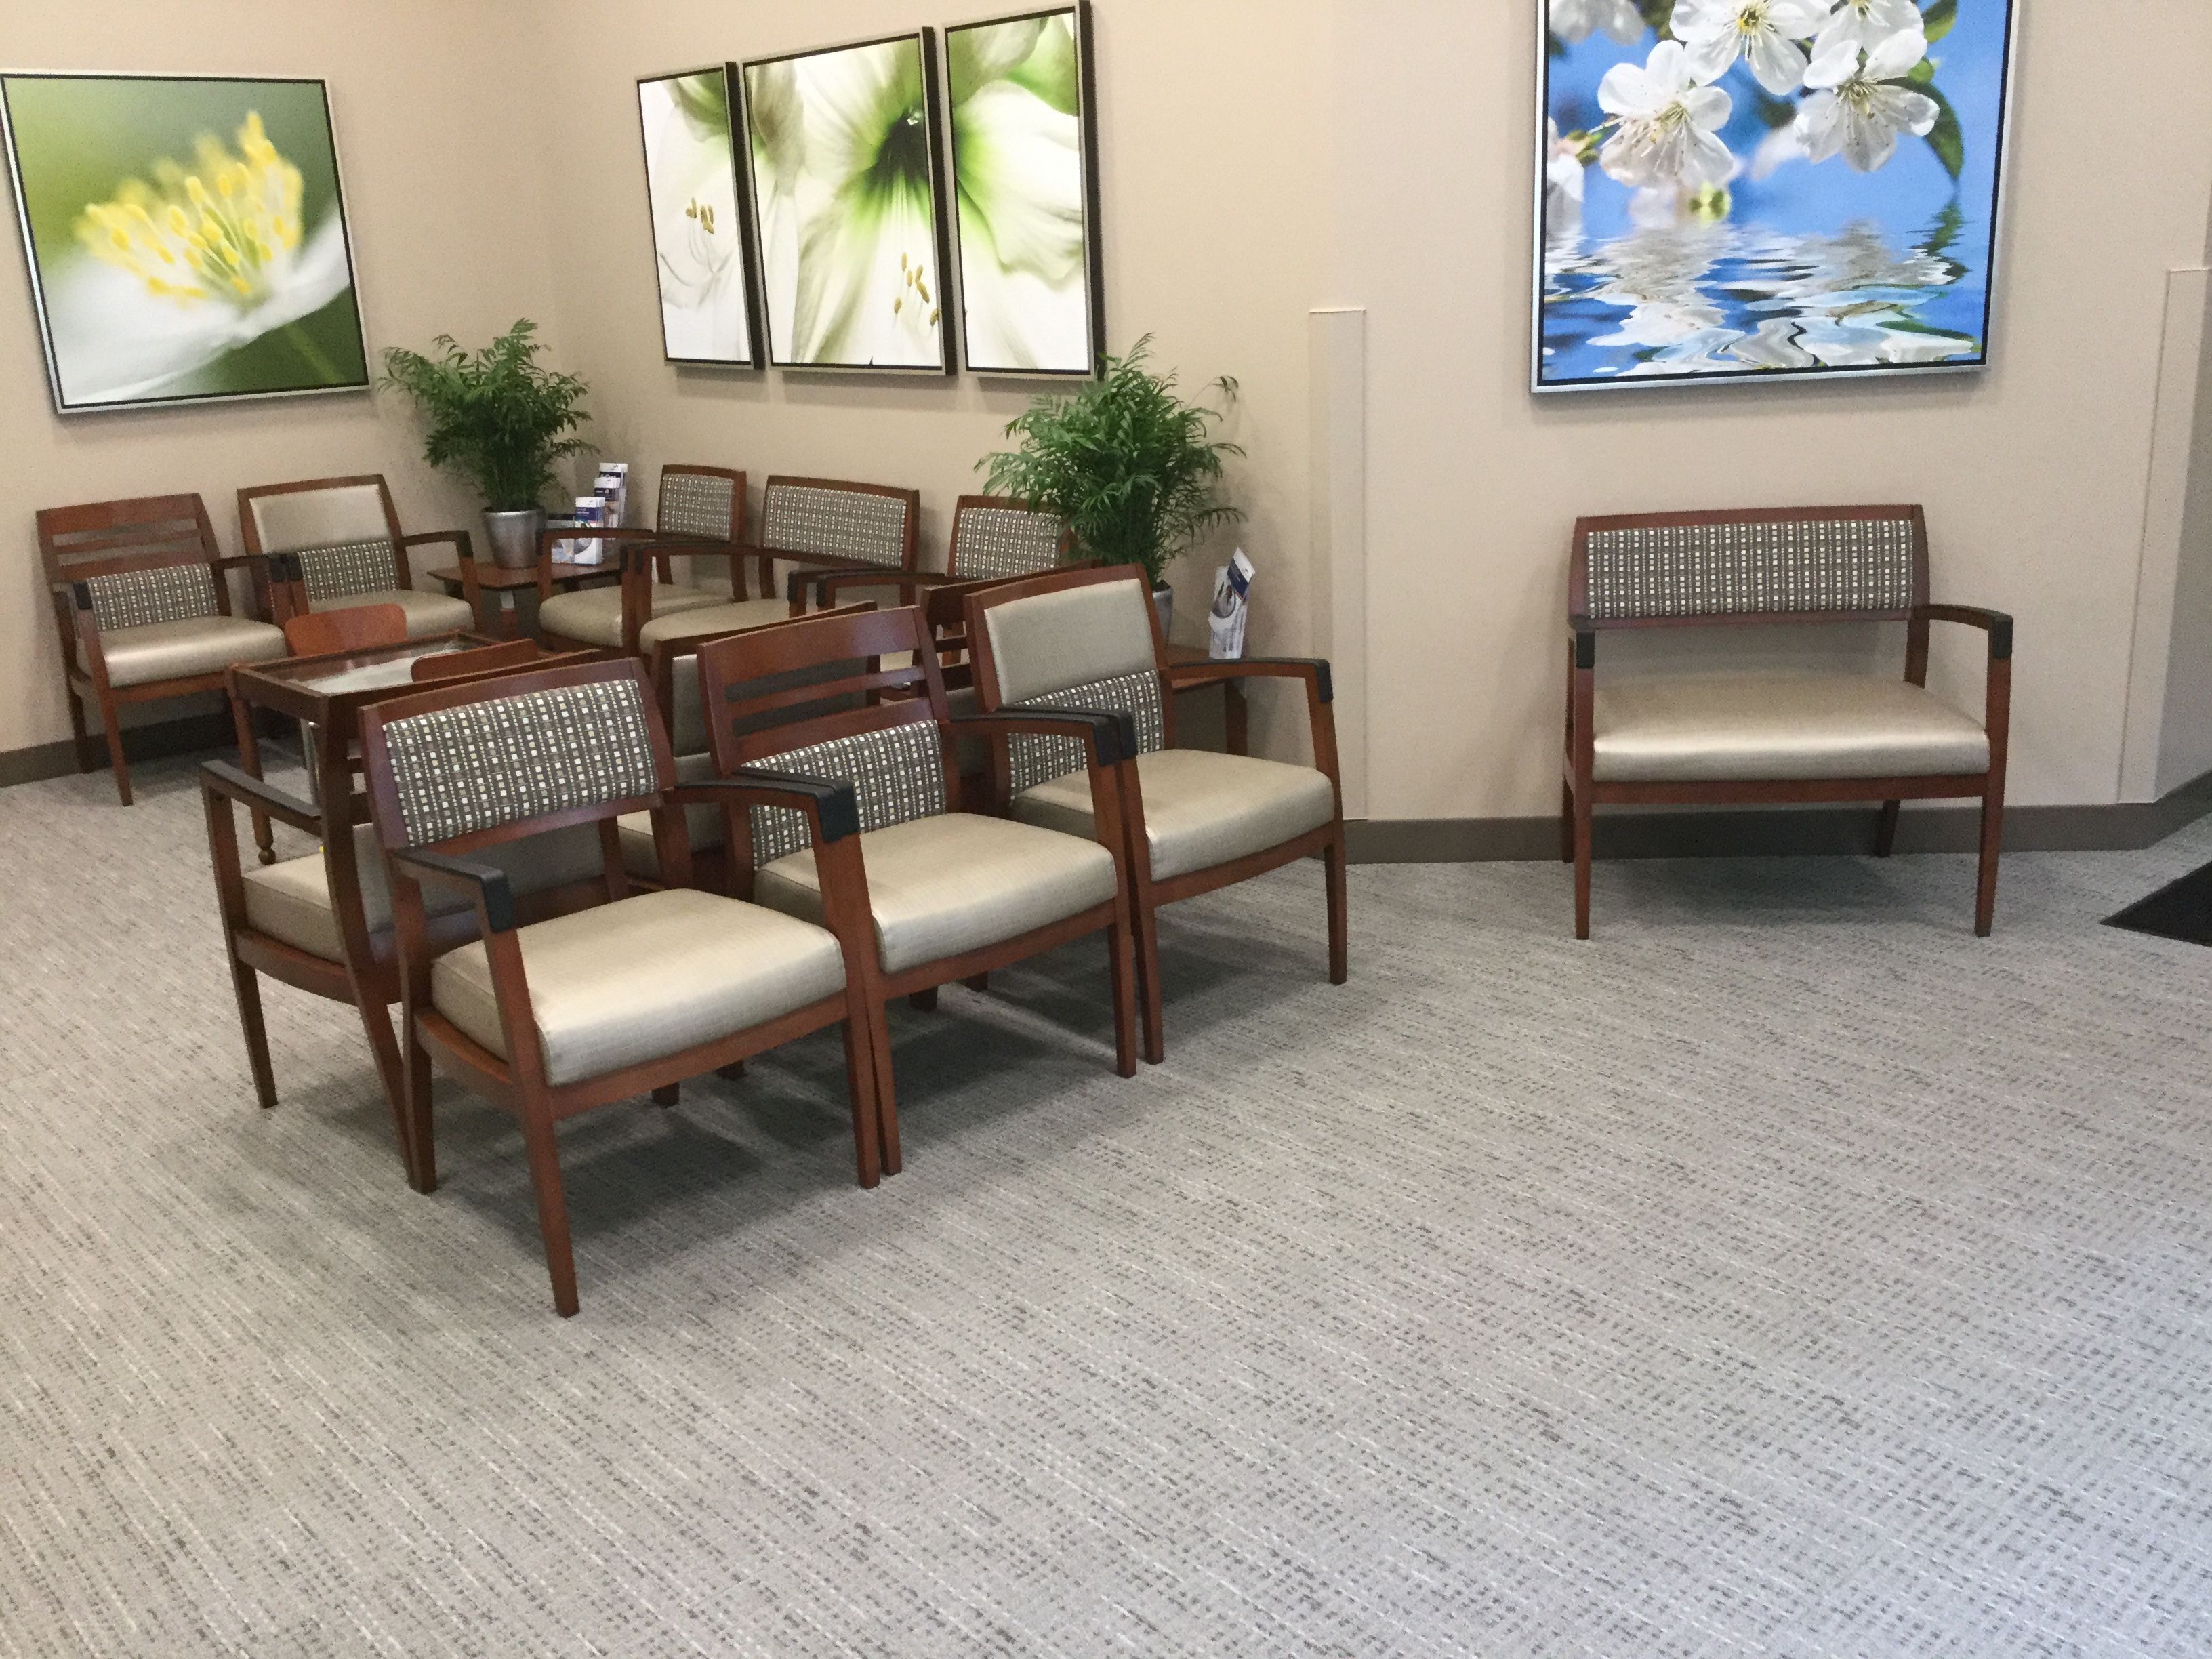 ssm healthcare st louis mo acquaint seating in lobby